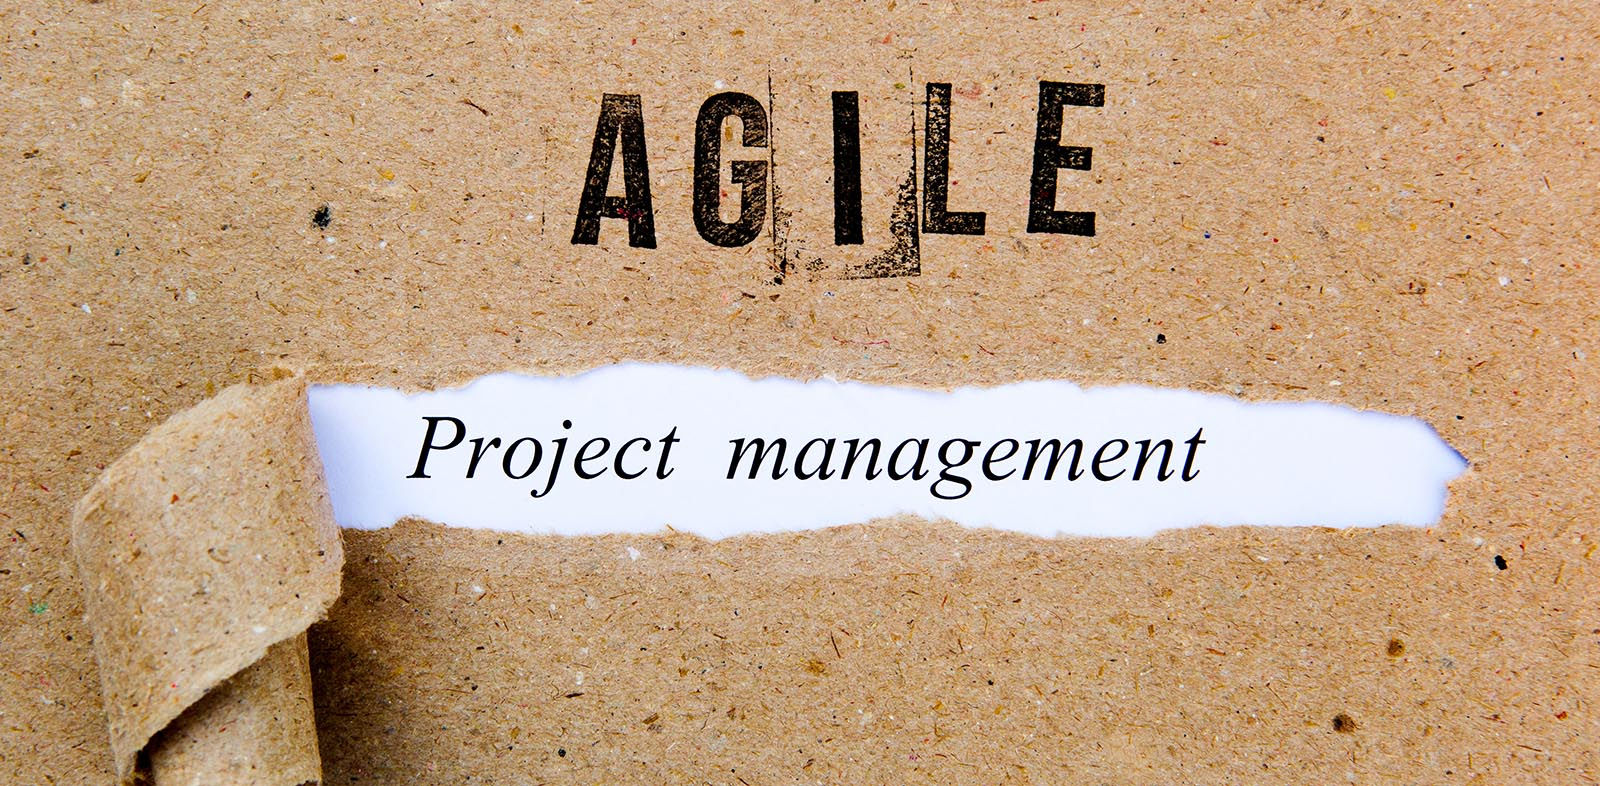 Agile project management words printed on brown paper